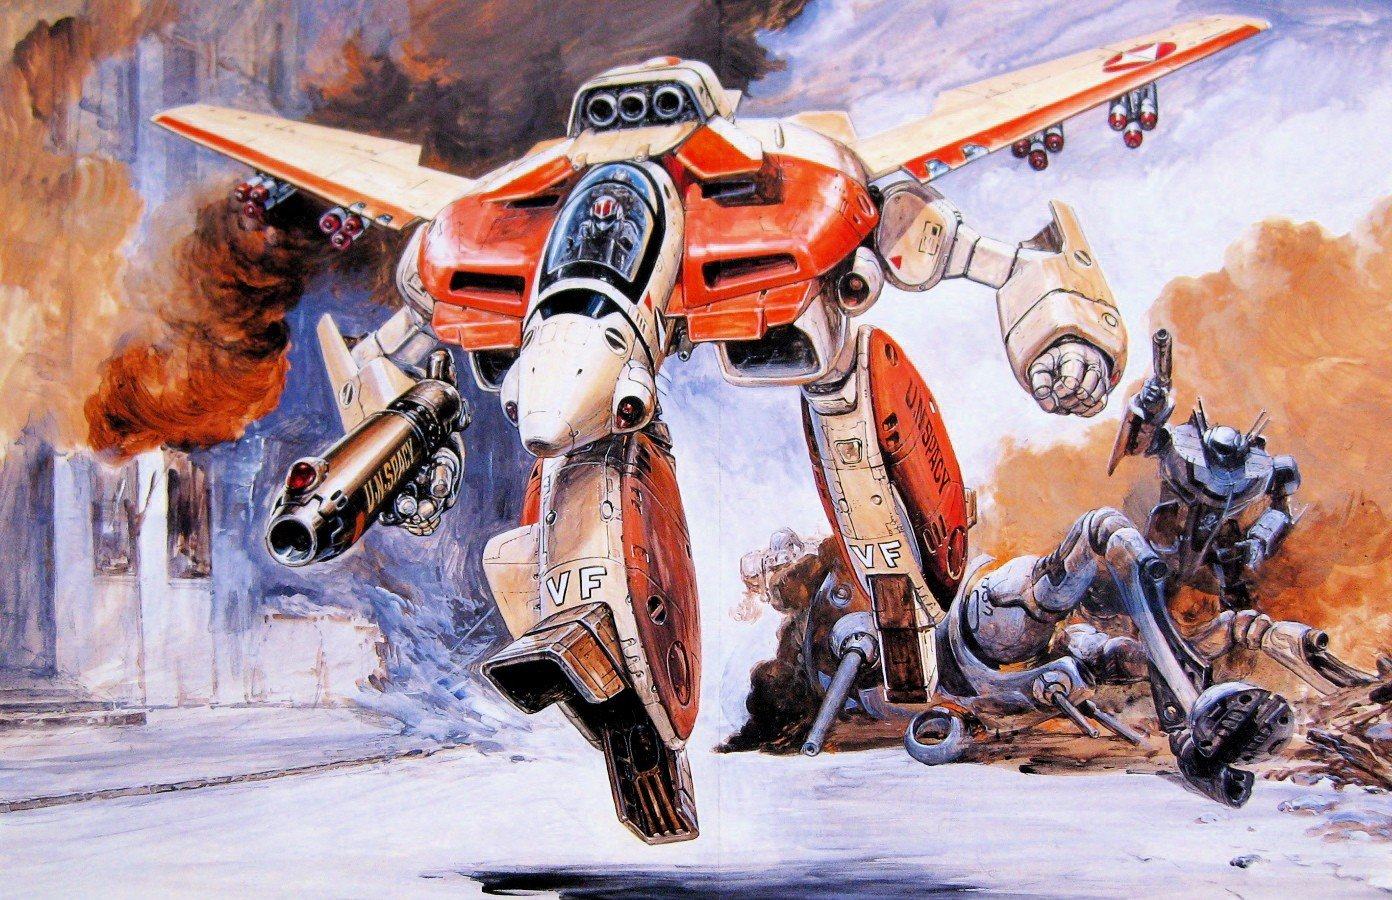 Robotech movie gets writers